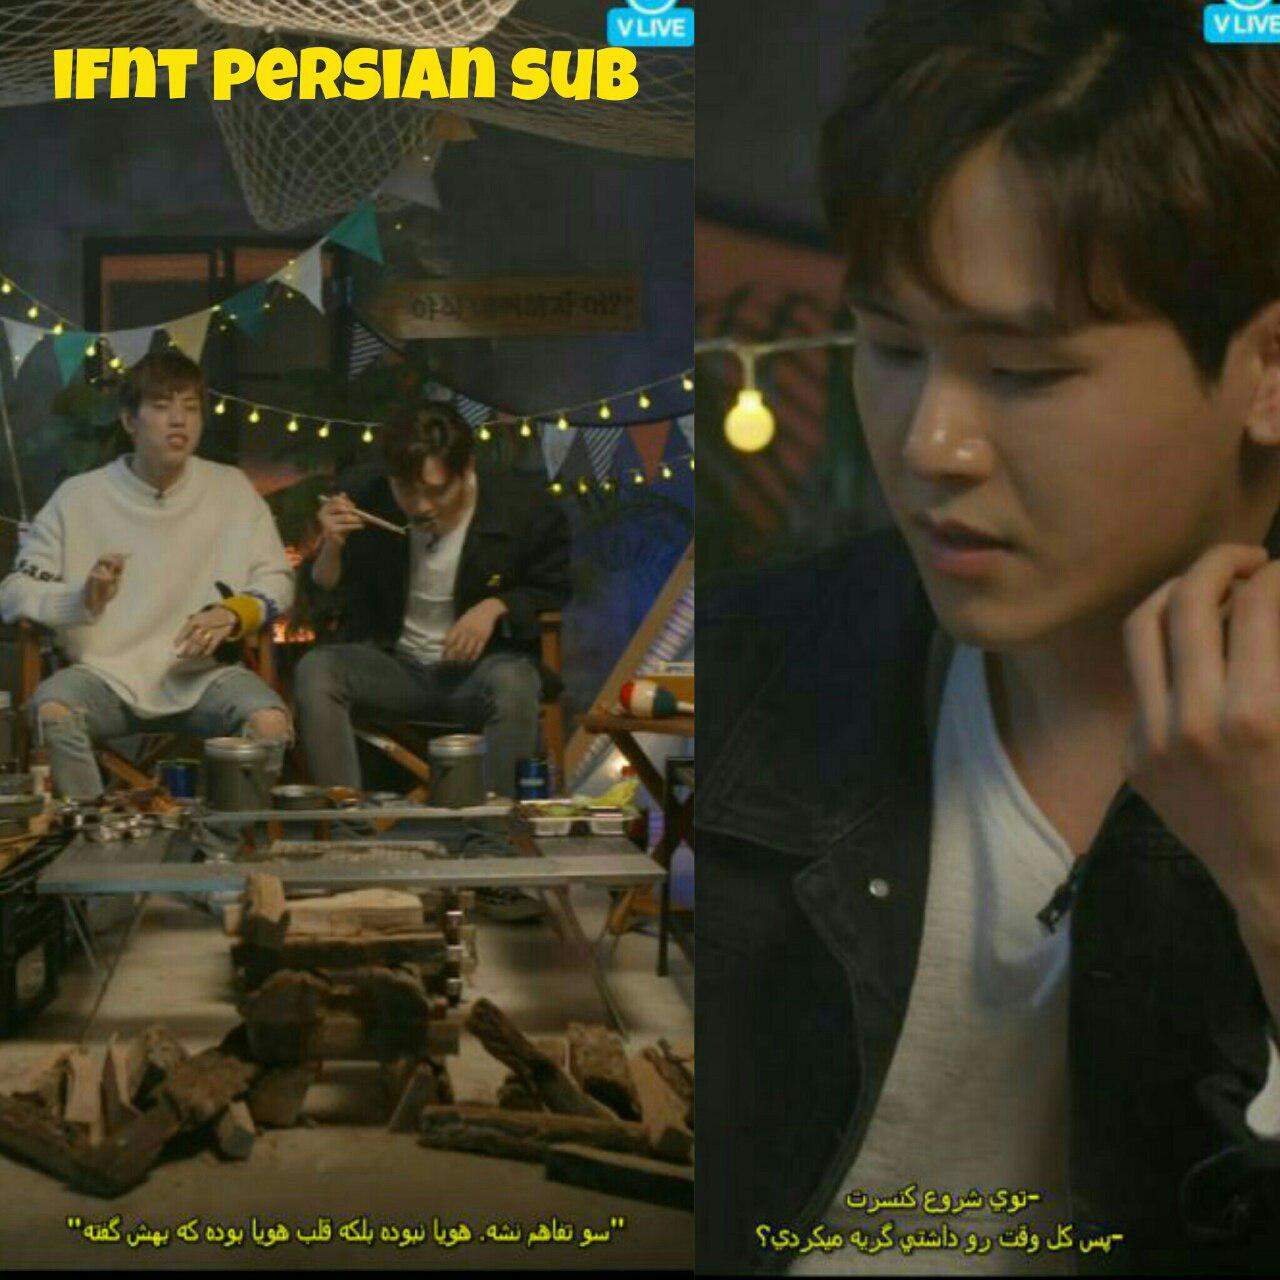 NIGHT EATING SHOW INFINITE H + PERSIAN SUB